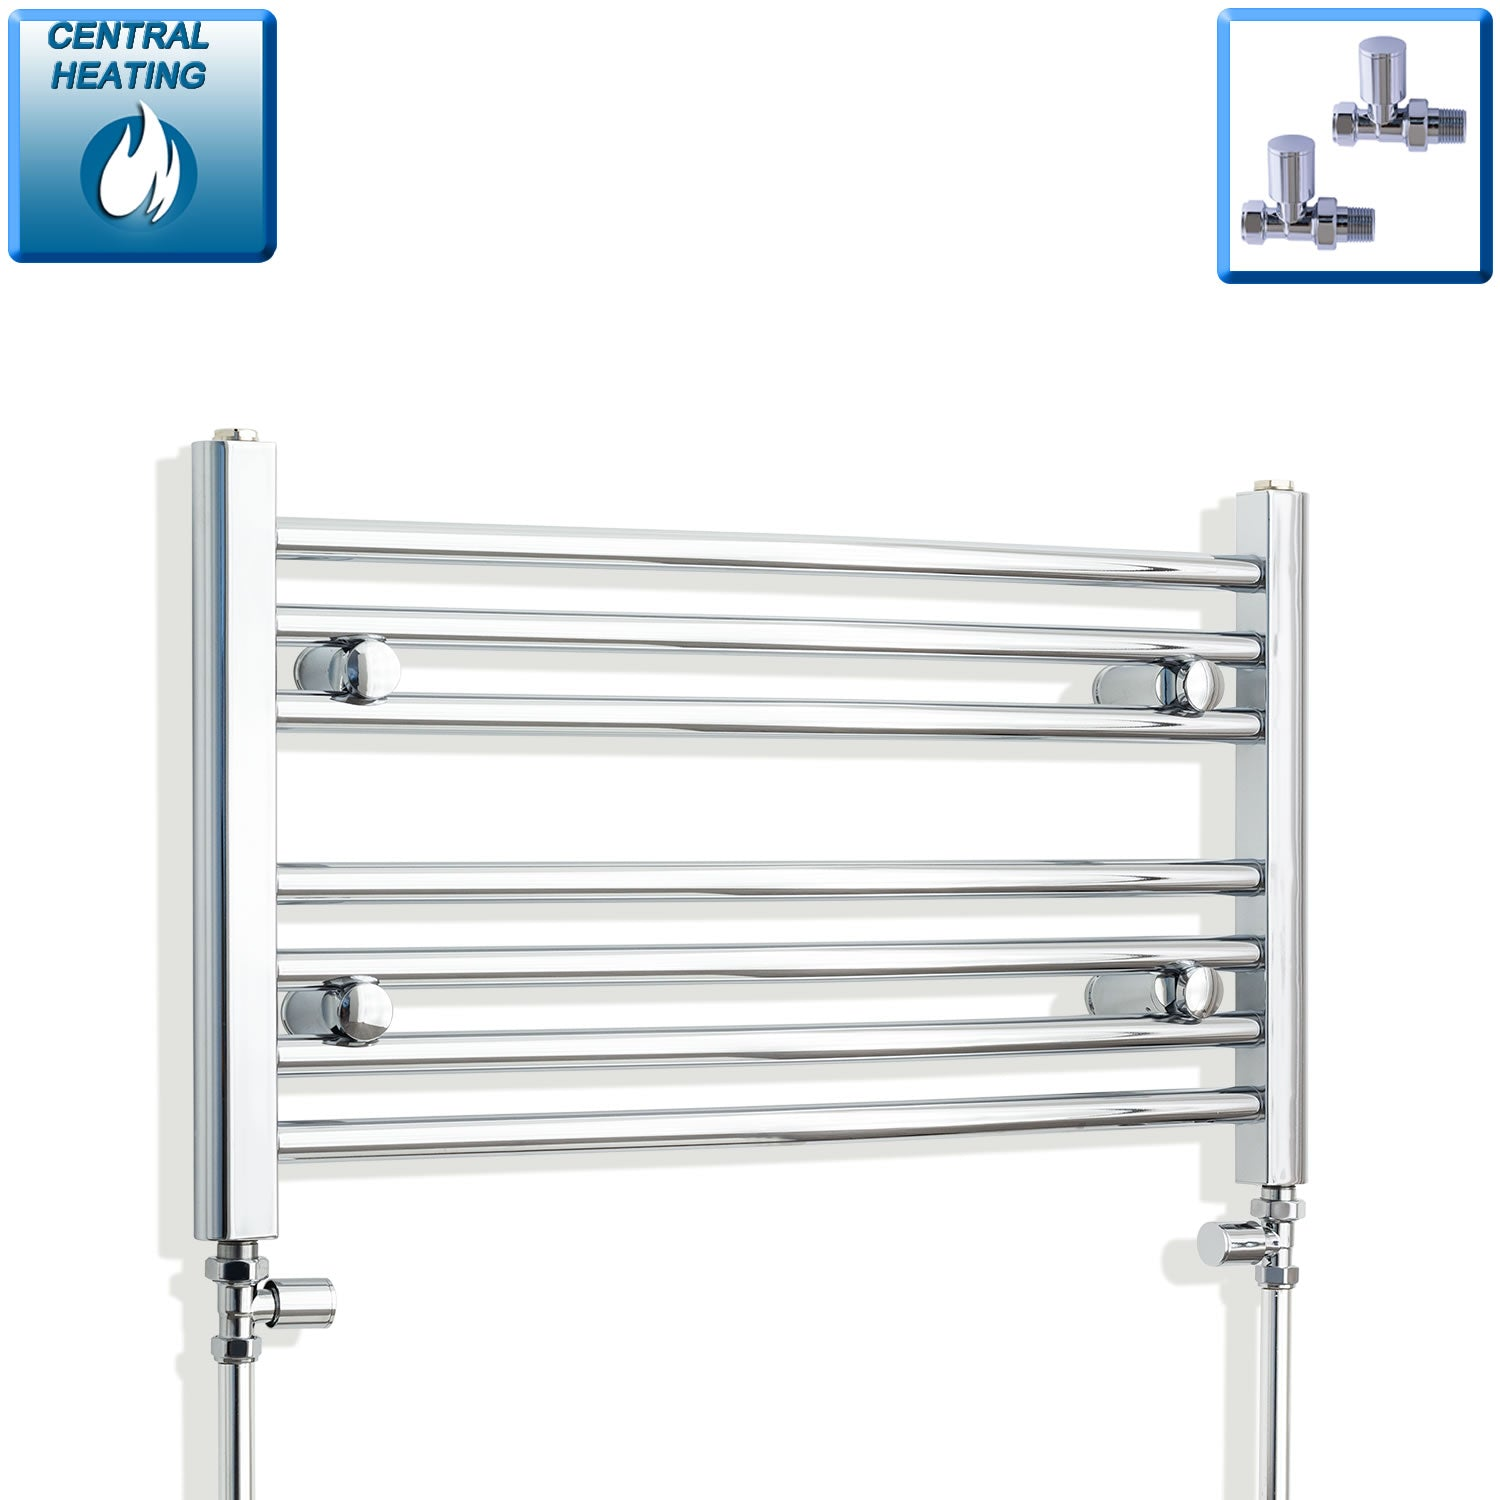 750mm x 400mm High Curved Chrome Towel Rail Radiator With Straight Valve